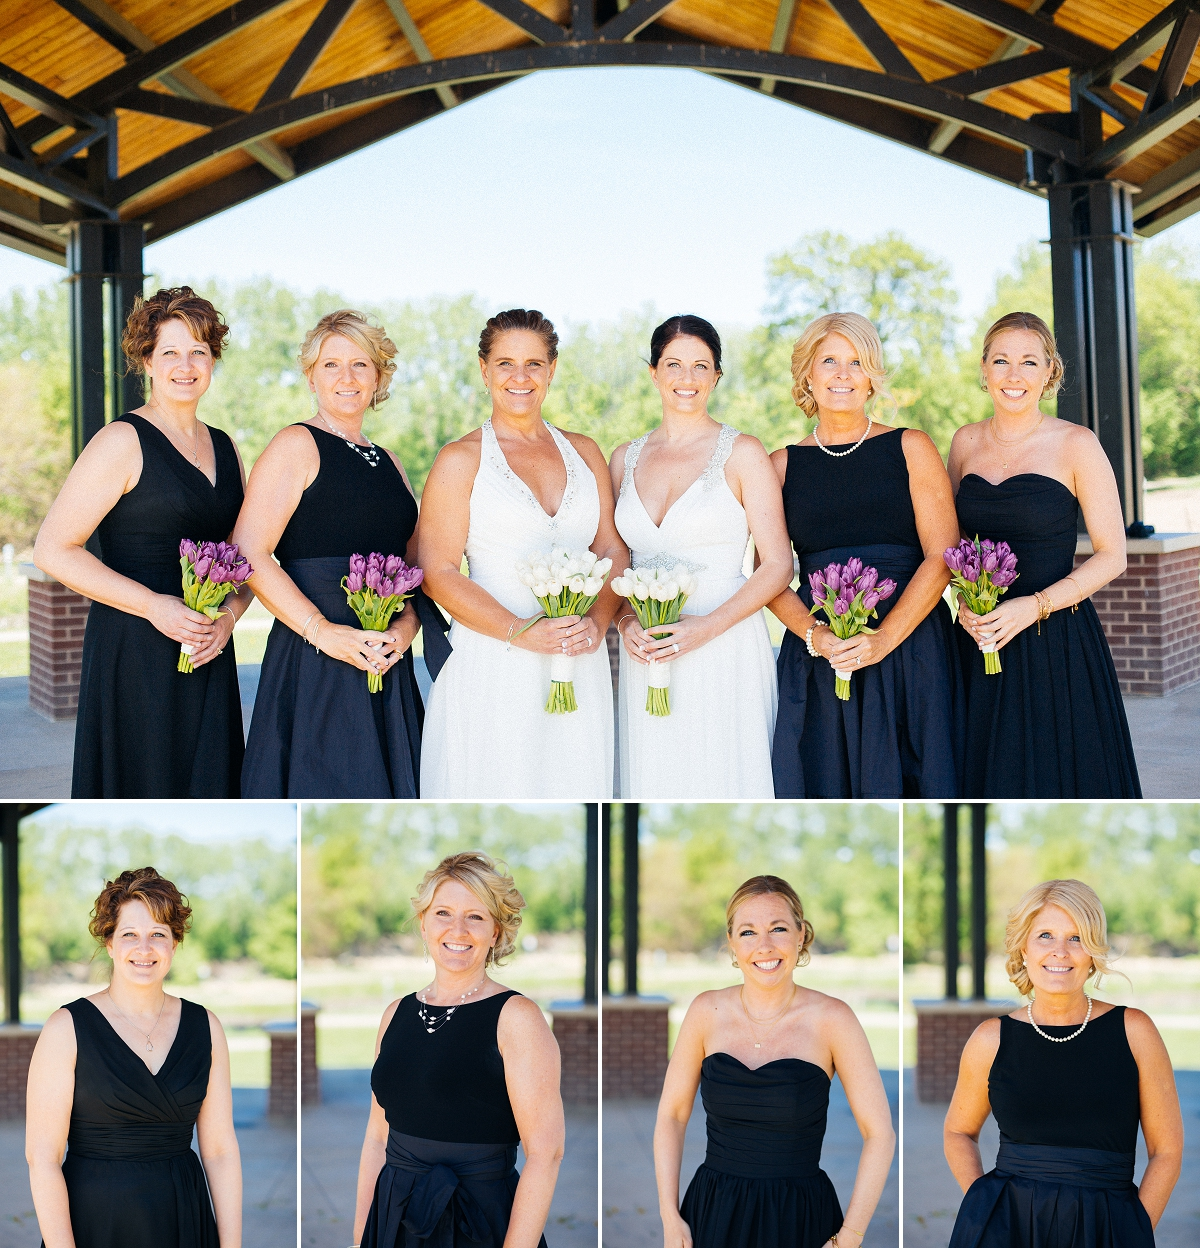 Beth and Gina Shakopee Wedding Photography 14